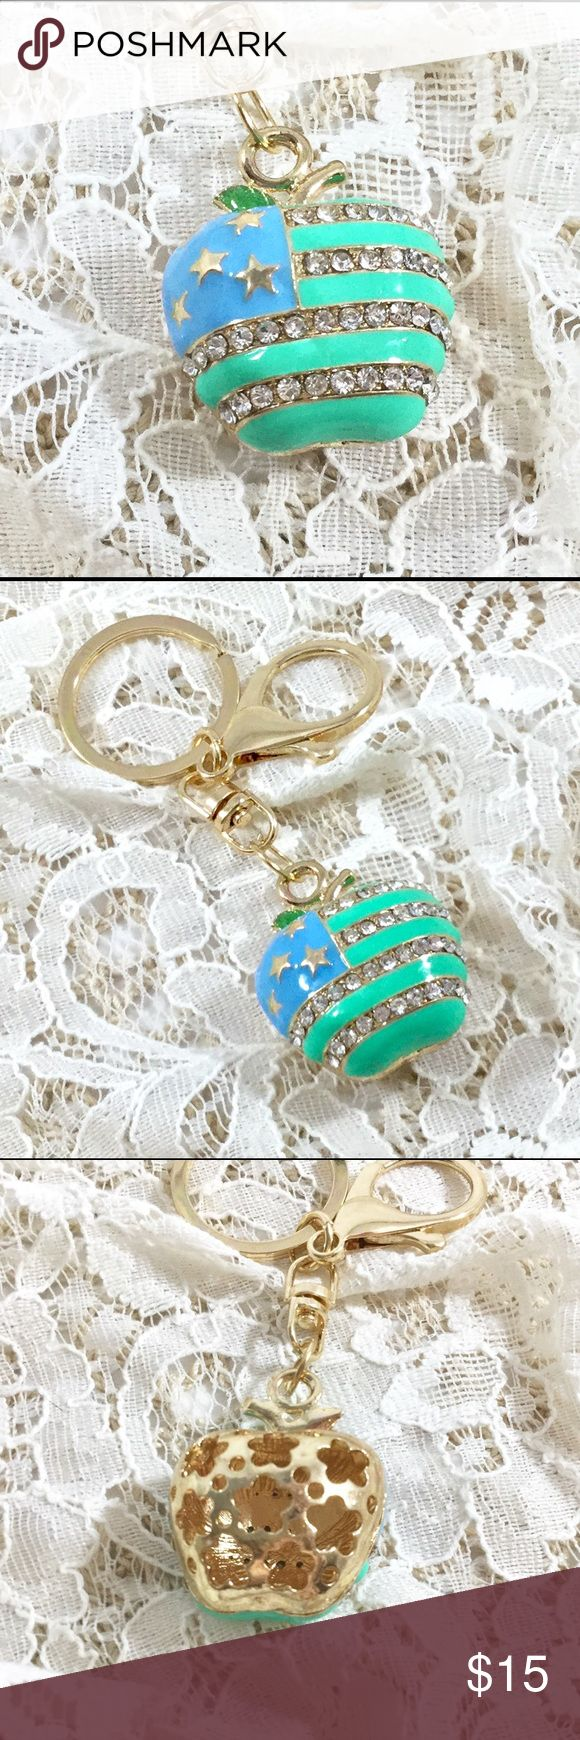 Green & Blue Apple USA Flag Key Ring Purse Charm Green enamel flag design with rhinestone stars and blue enamel corner with gold tone stars.  Great as a stocking stuffer or clip to a bow on a gift...too cute!!🌟🌟🌟🌟 Accessories Key & Card Holders